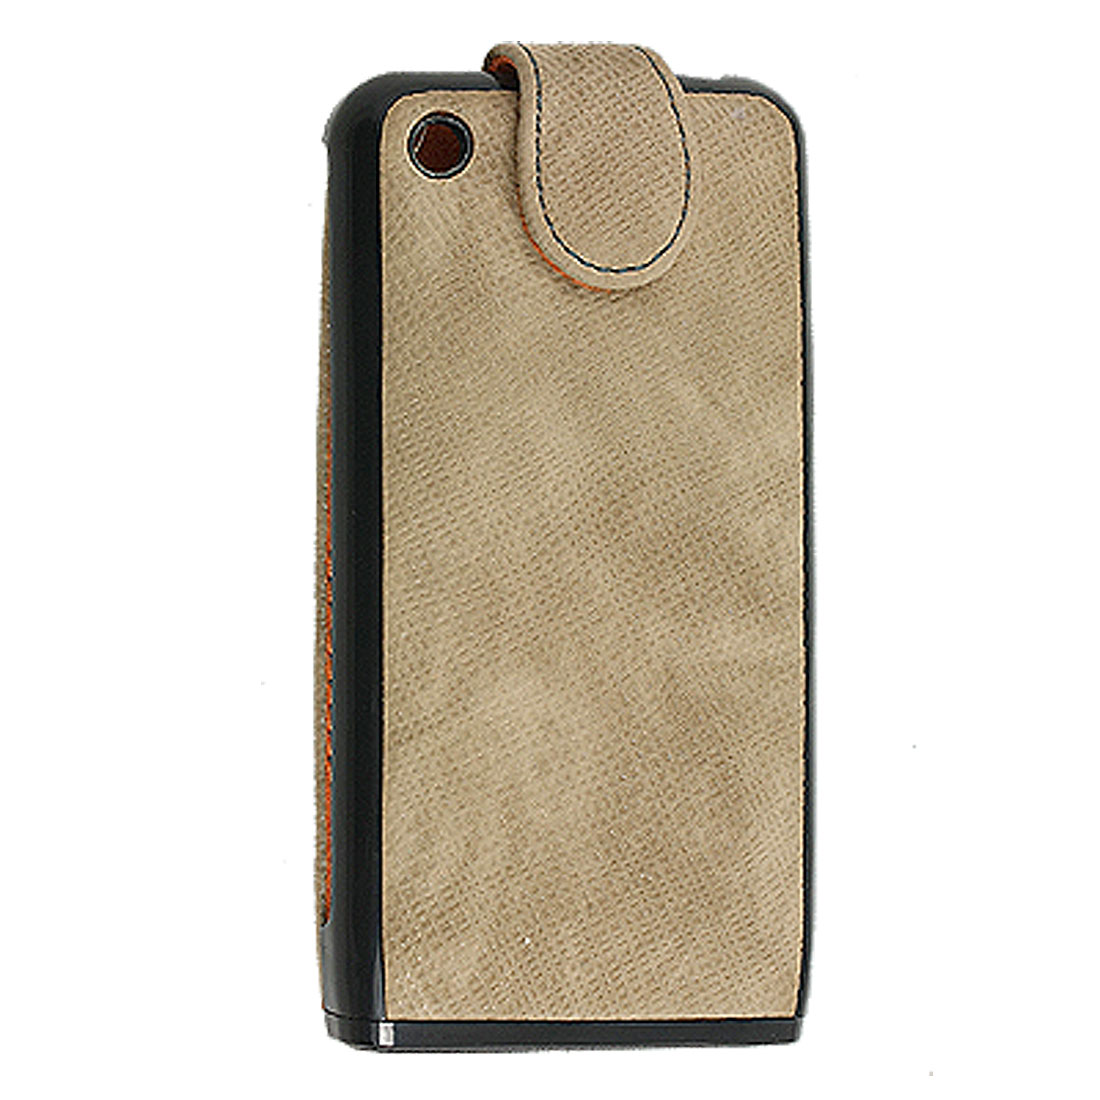 Khaki Faux Leather Magnetic Vertical Flip Pouch for iPhone 3G 3GS